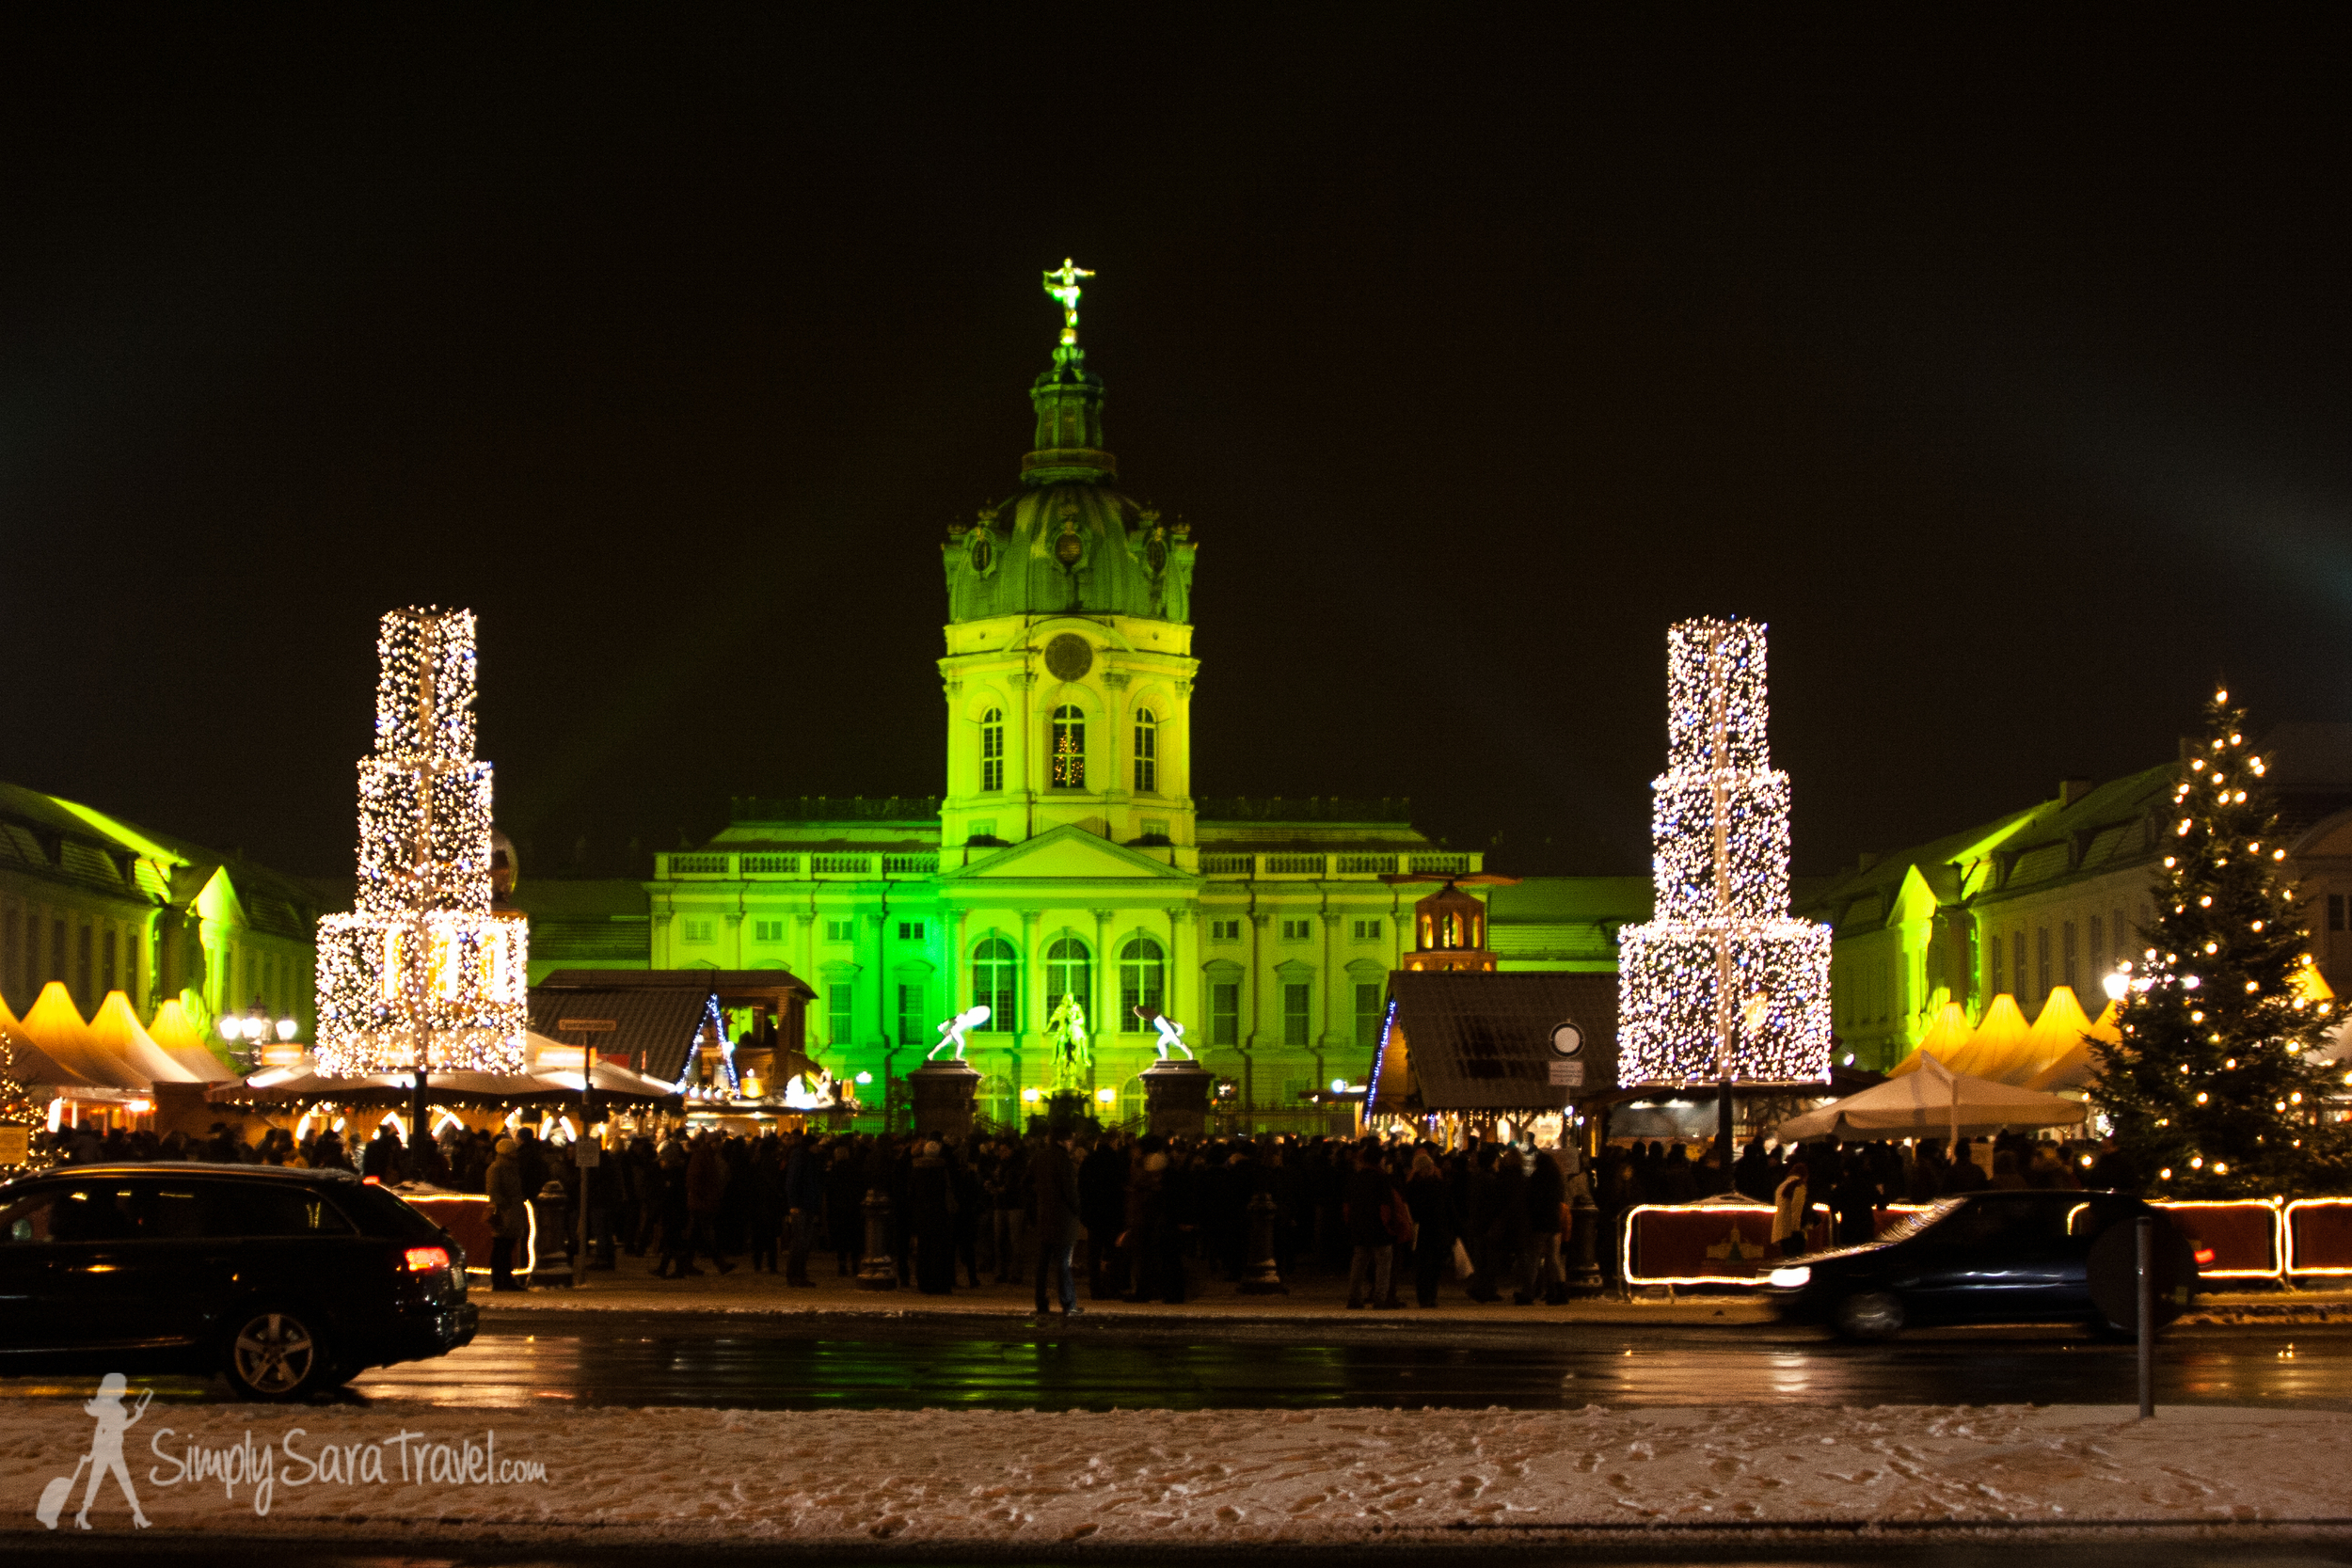 A Christmas market in Berlin in front of the Charlottenburg Palace